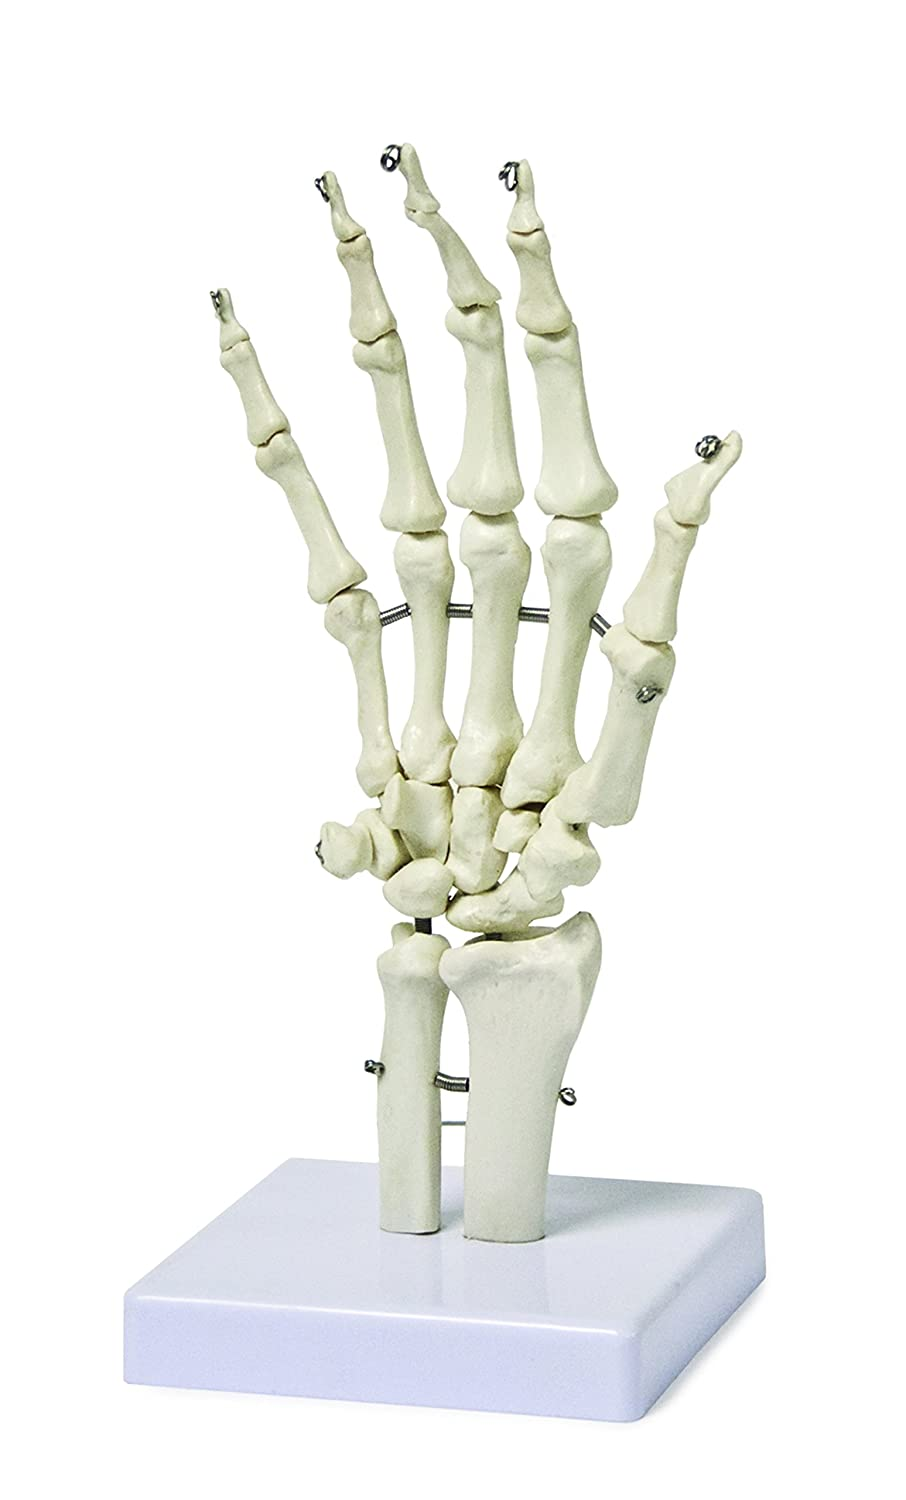 Vision Scientific VAJ210 Hand Bone Model | Fully Articulated | Shows Distal Portions of the Ulna and Radius | Flexible to Portray the Natural Movement